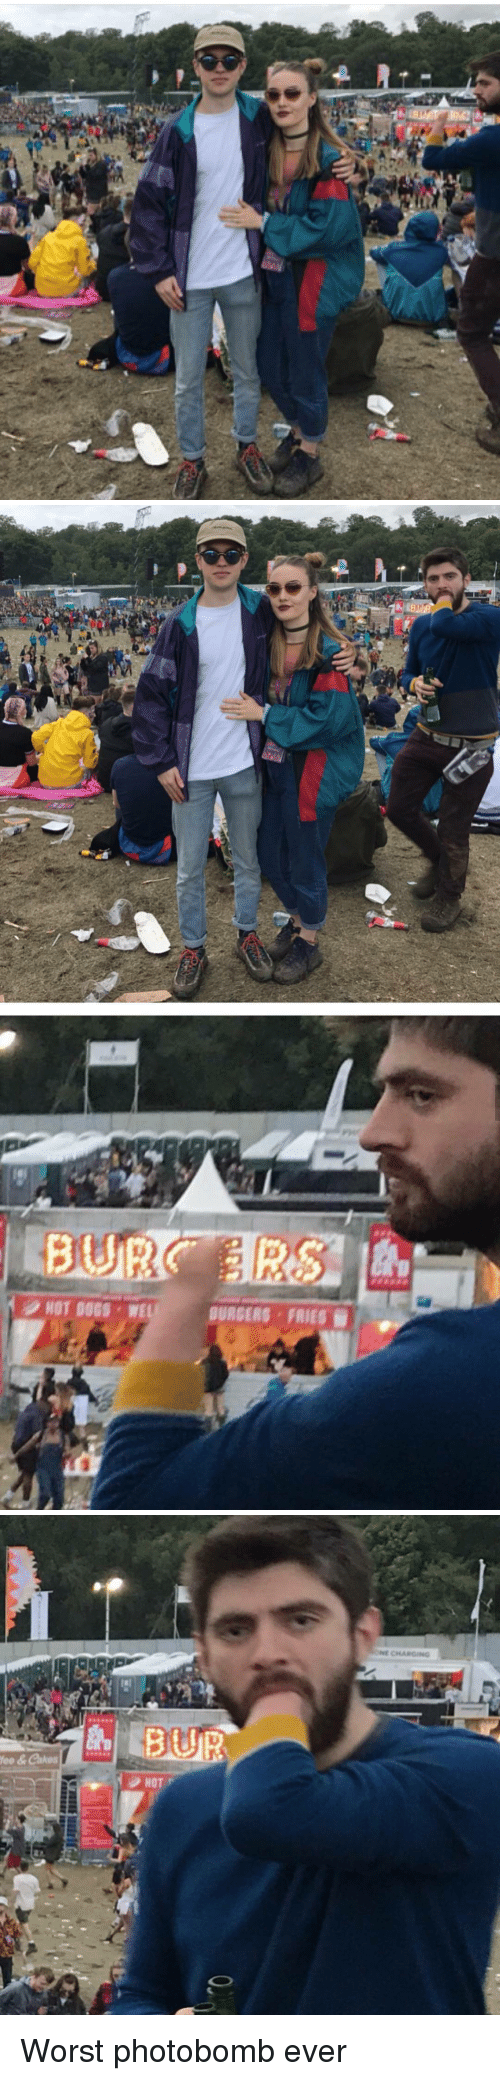 Dogs, Funny, and Photobomb: Ac  n   P   HOT DOGS WEL  BURGERS FRIES   fee & Cakes  BUR  HOT  ONE CHARGING Worst photobomb ever